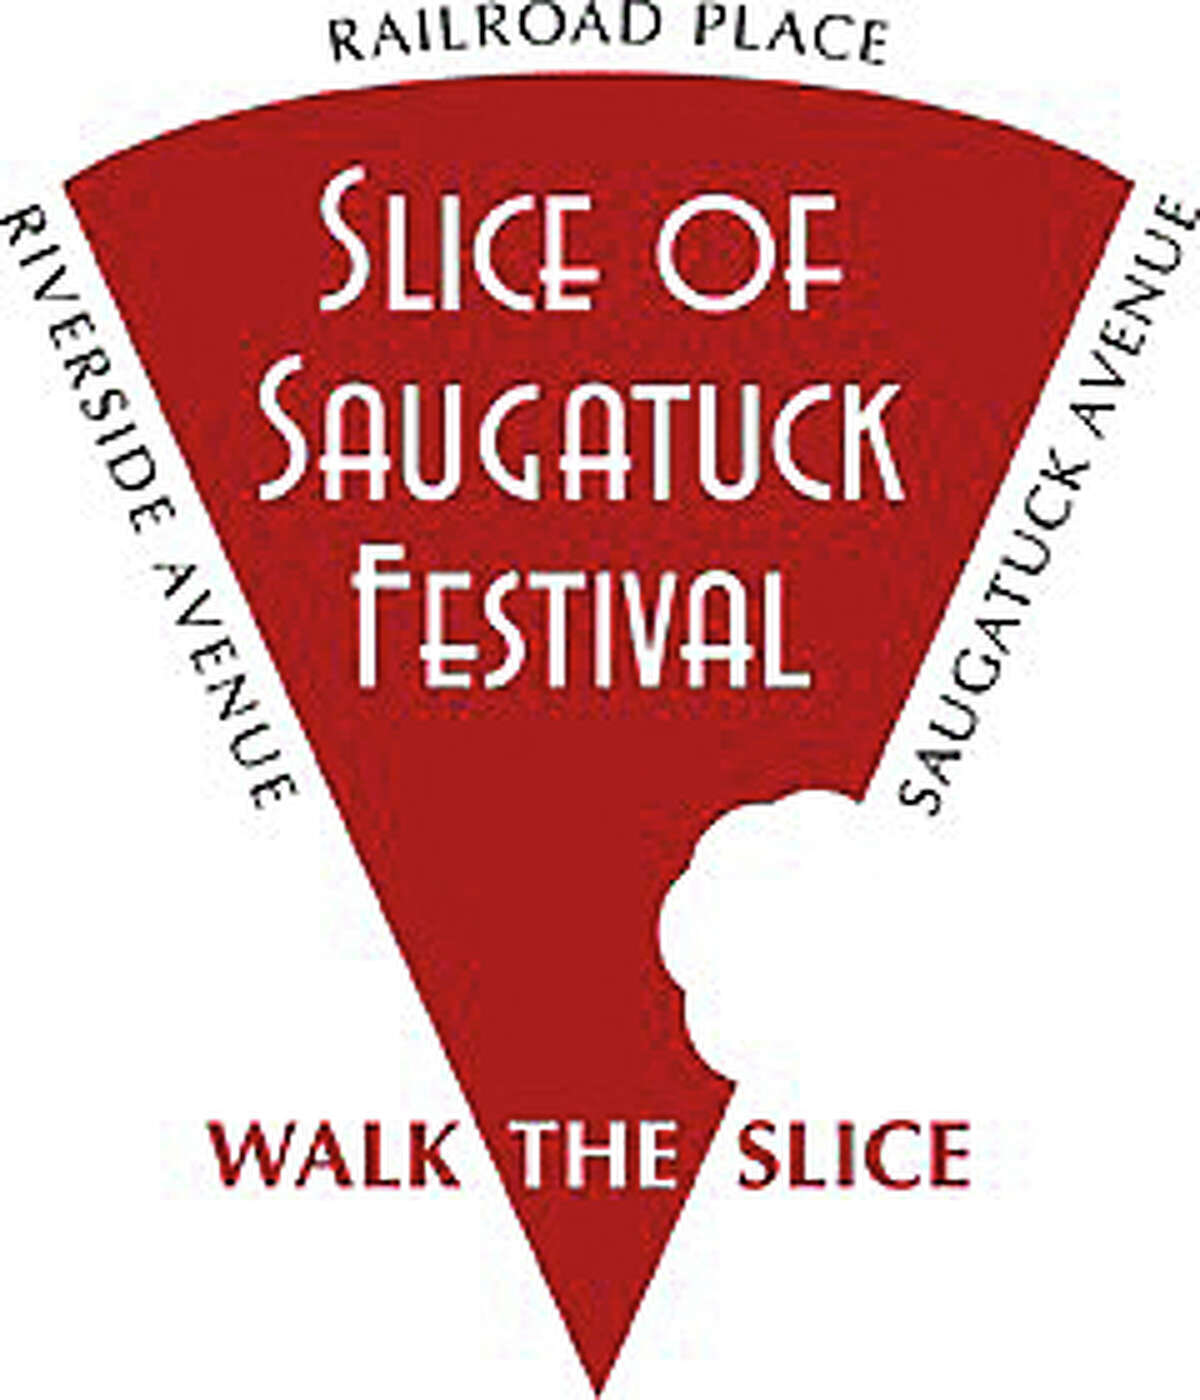 The fourth Slice of Saugatuck Festival will take place Sept. 12 throughout the neighborhood, with 44 restaurants and retailers set to participate.